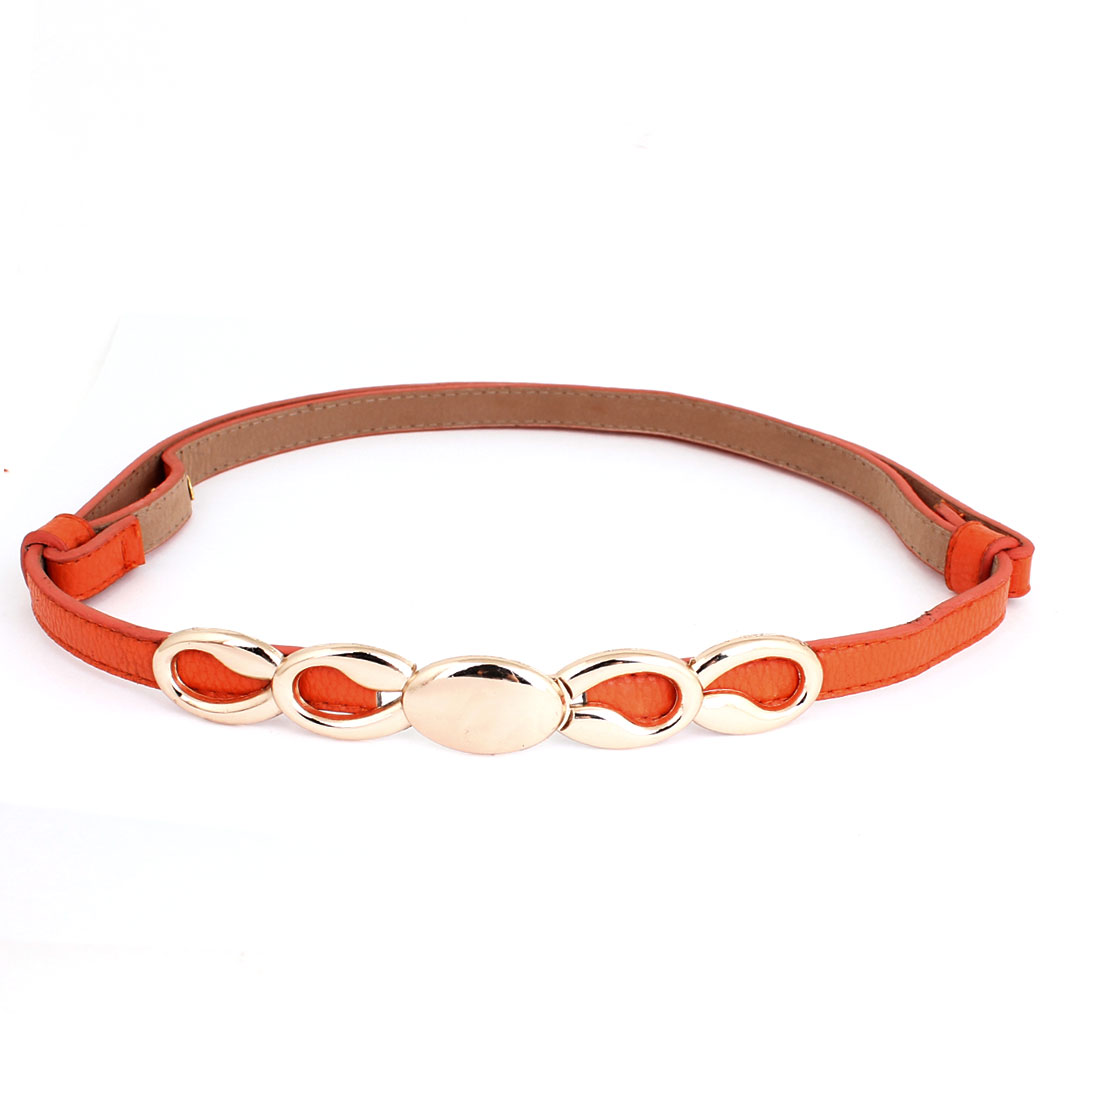 Metal Interlock Buckle Faux Leather Adjustable Slim Cinch Belt Orange for Woman